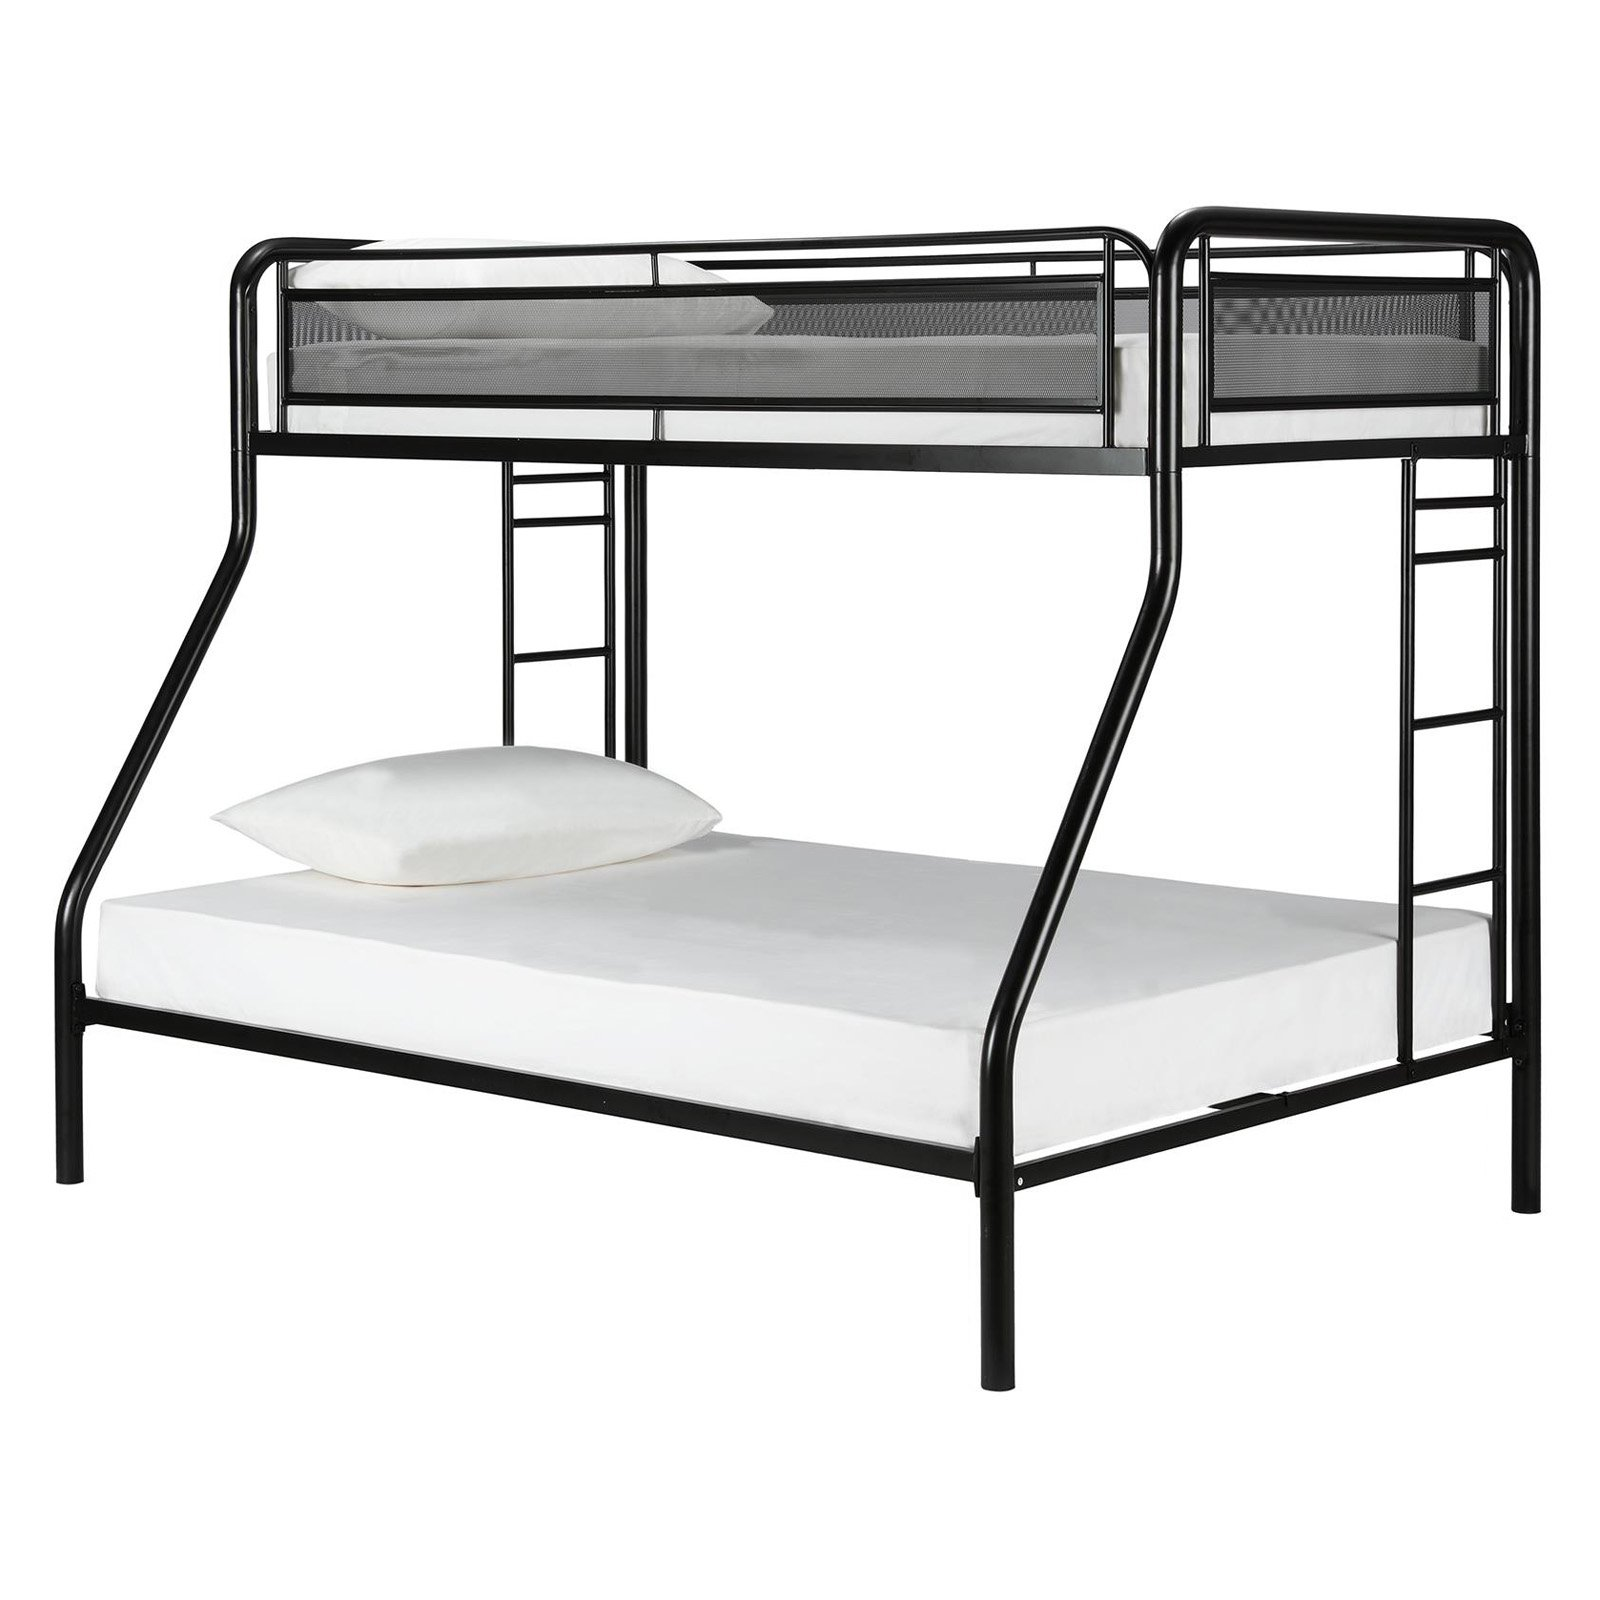 DHP Rockstar Twin Over Full Metal Bunk Bed, Multiple Colors